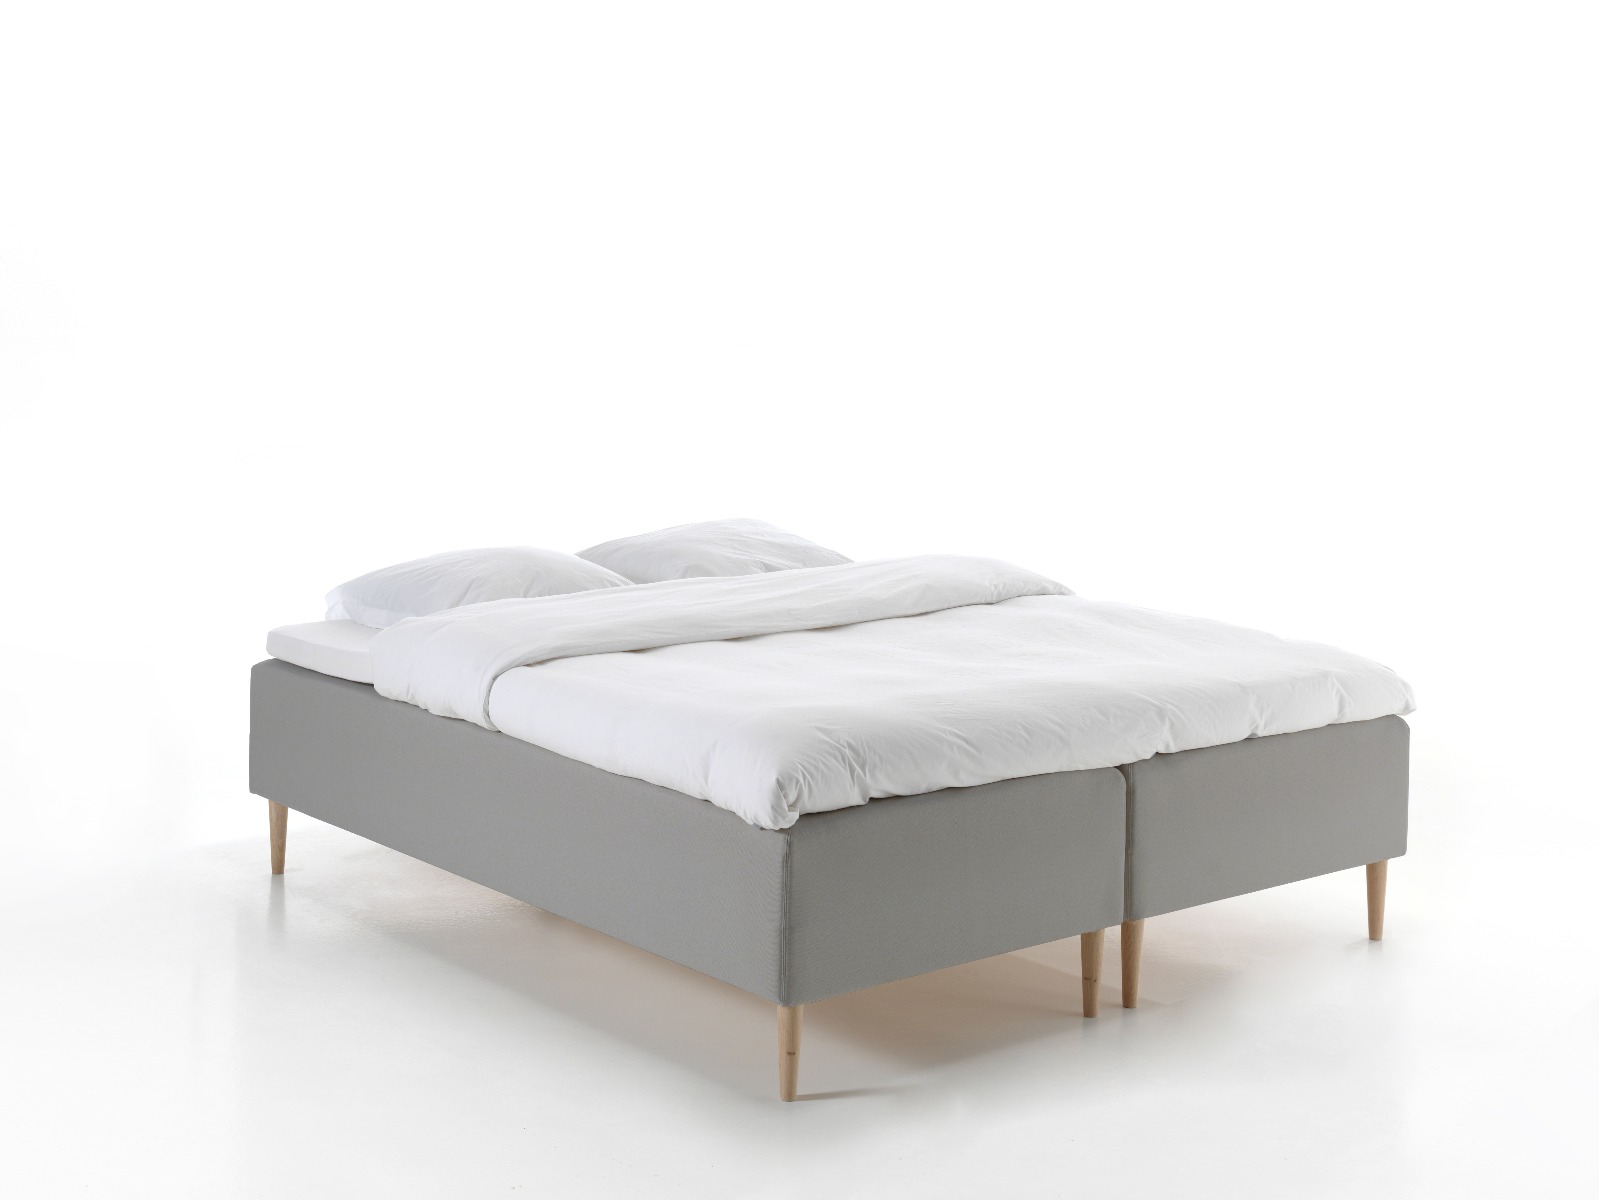 european house of beds – Senses lux på bedre nætter